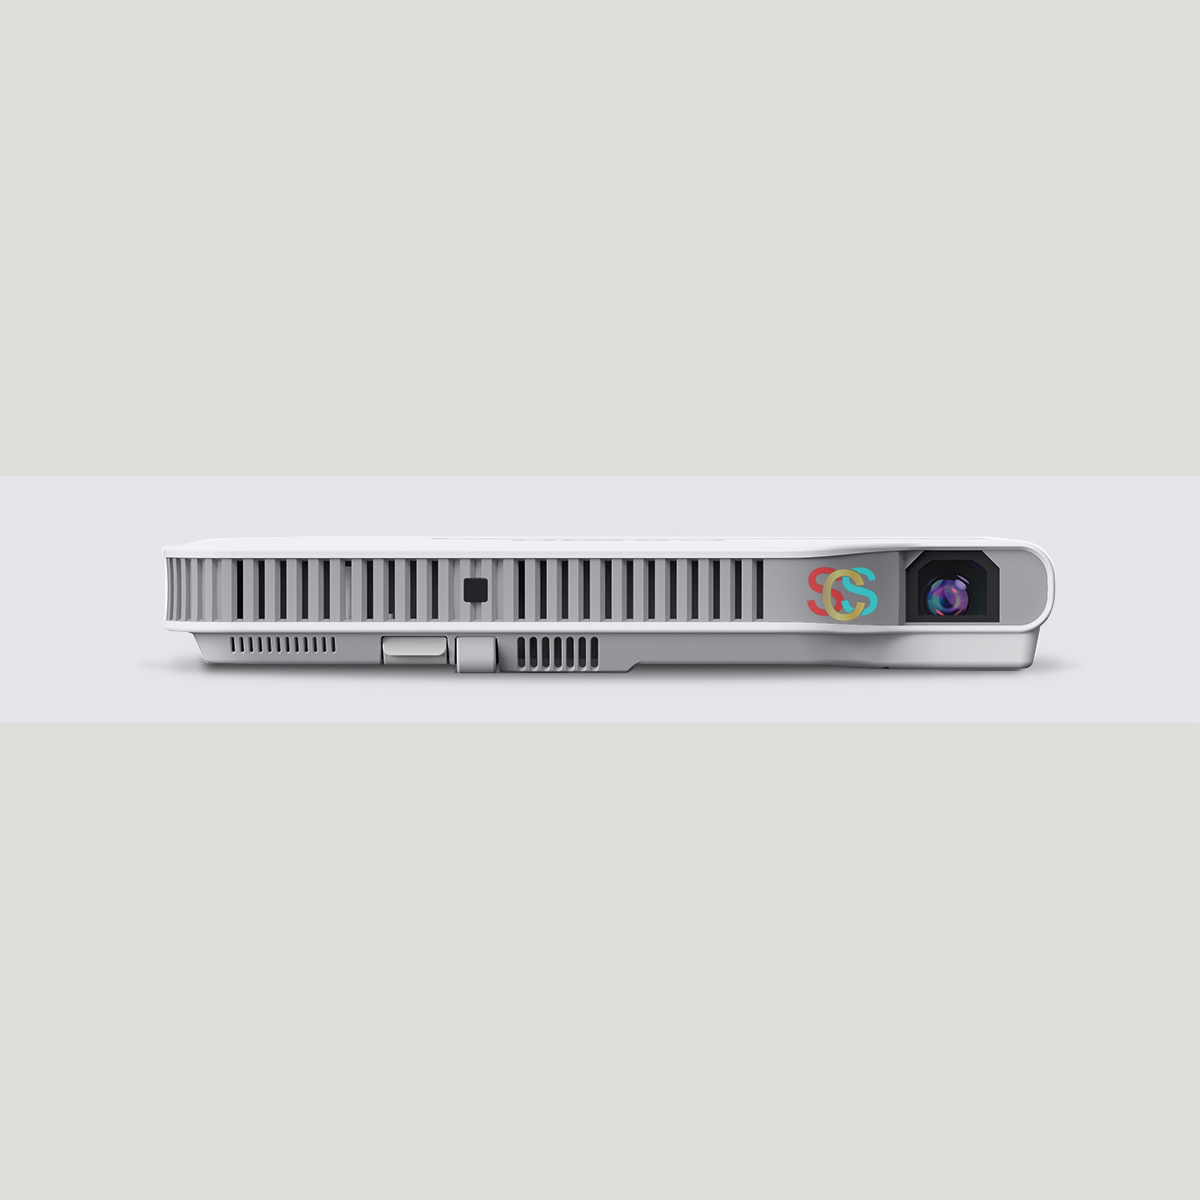 Casio XJ-A257 (3000 Lumens) LED Laser Slim Projector with 2GB Memory